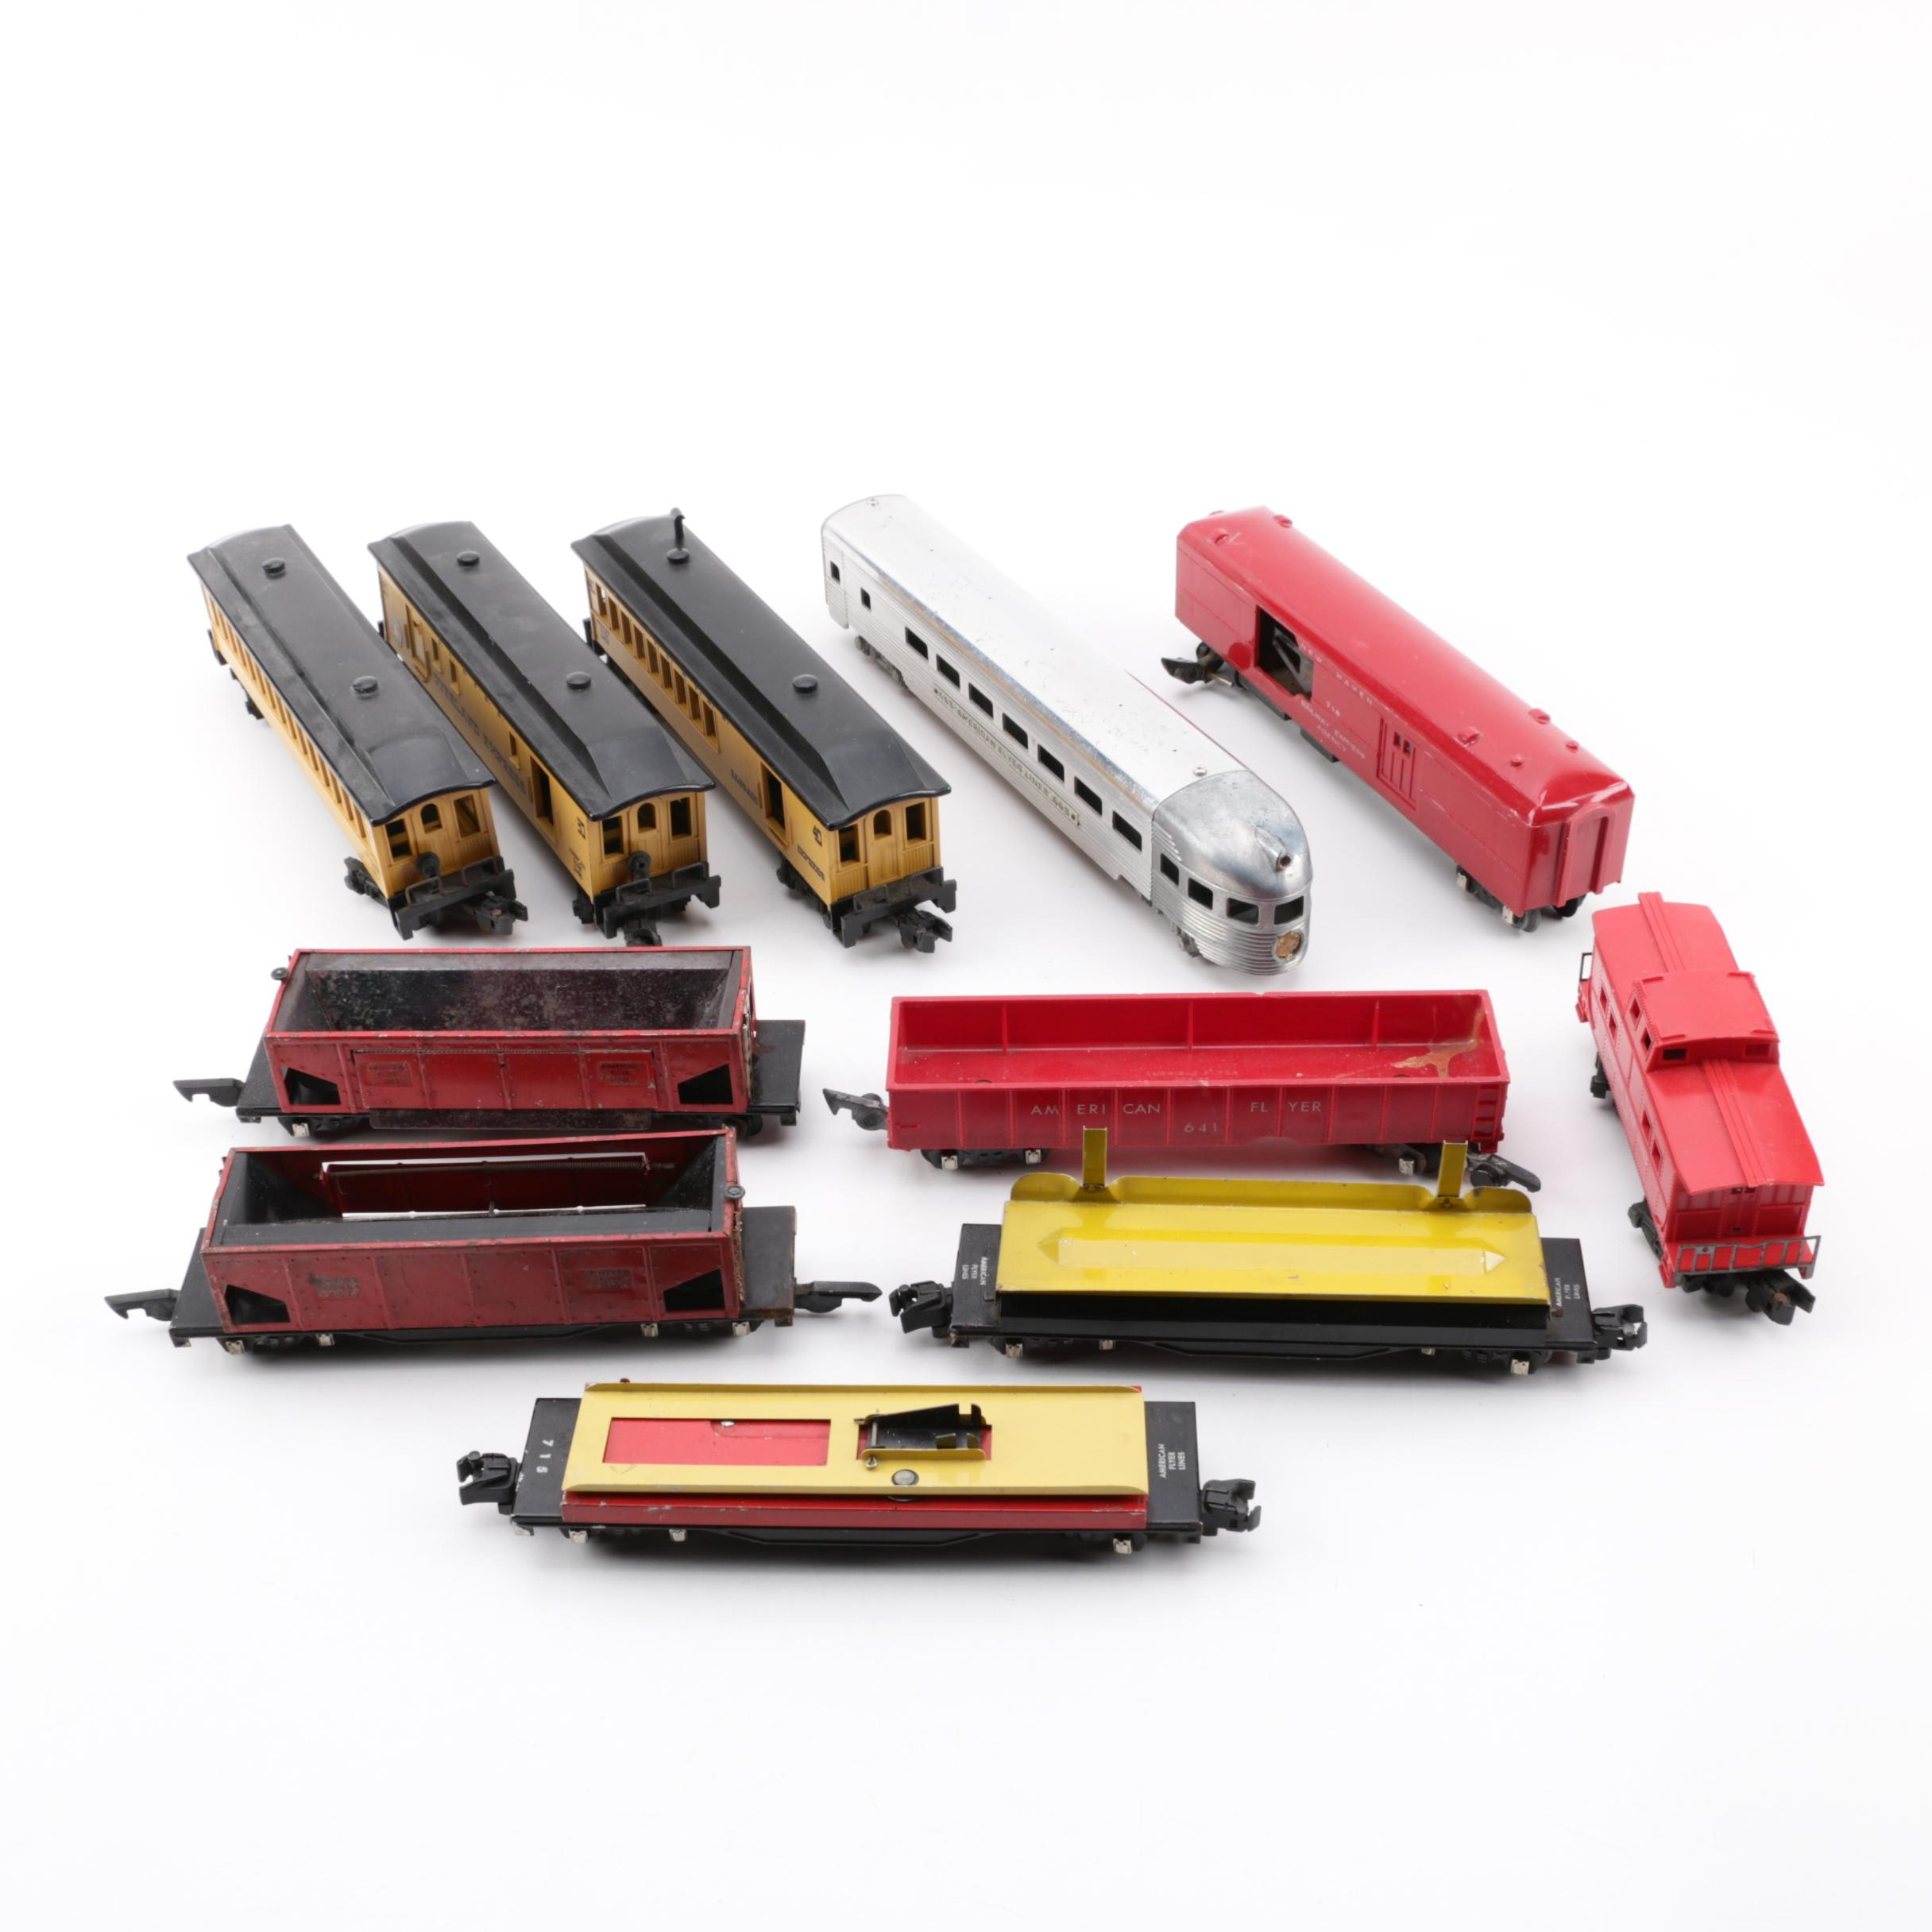 American Flyer S-Scale Passenger and Freight Train Cars